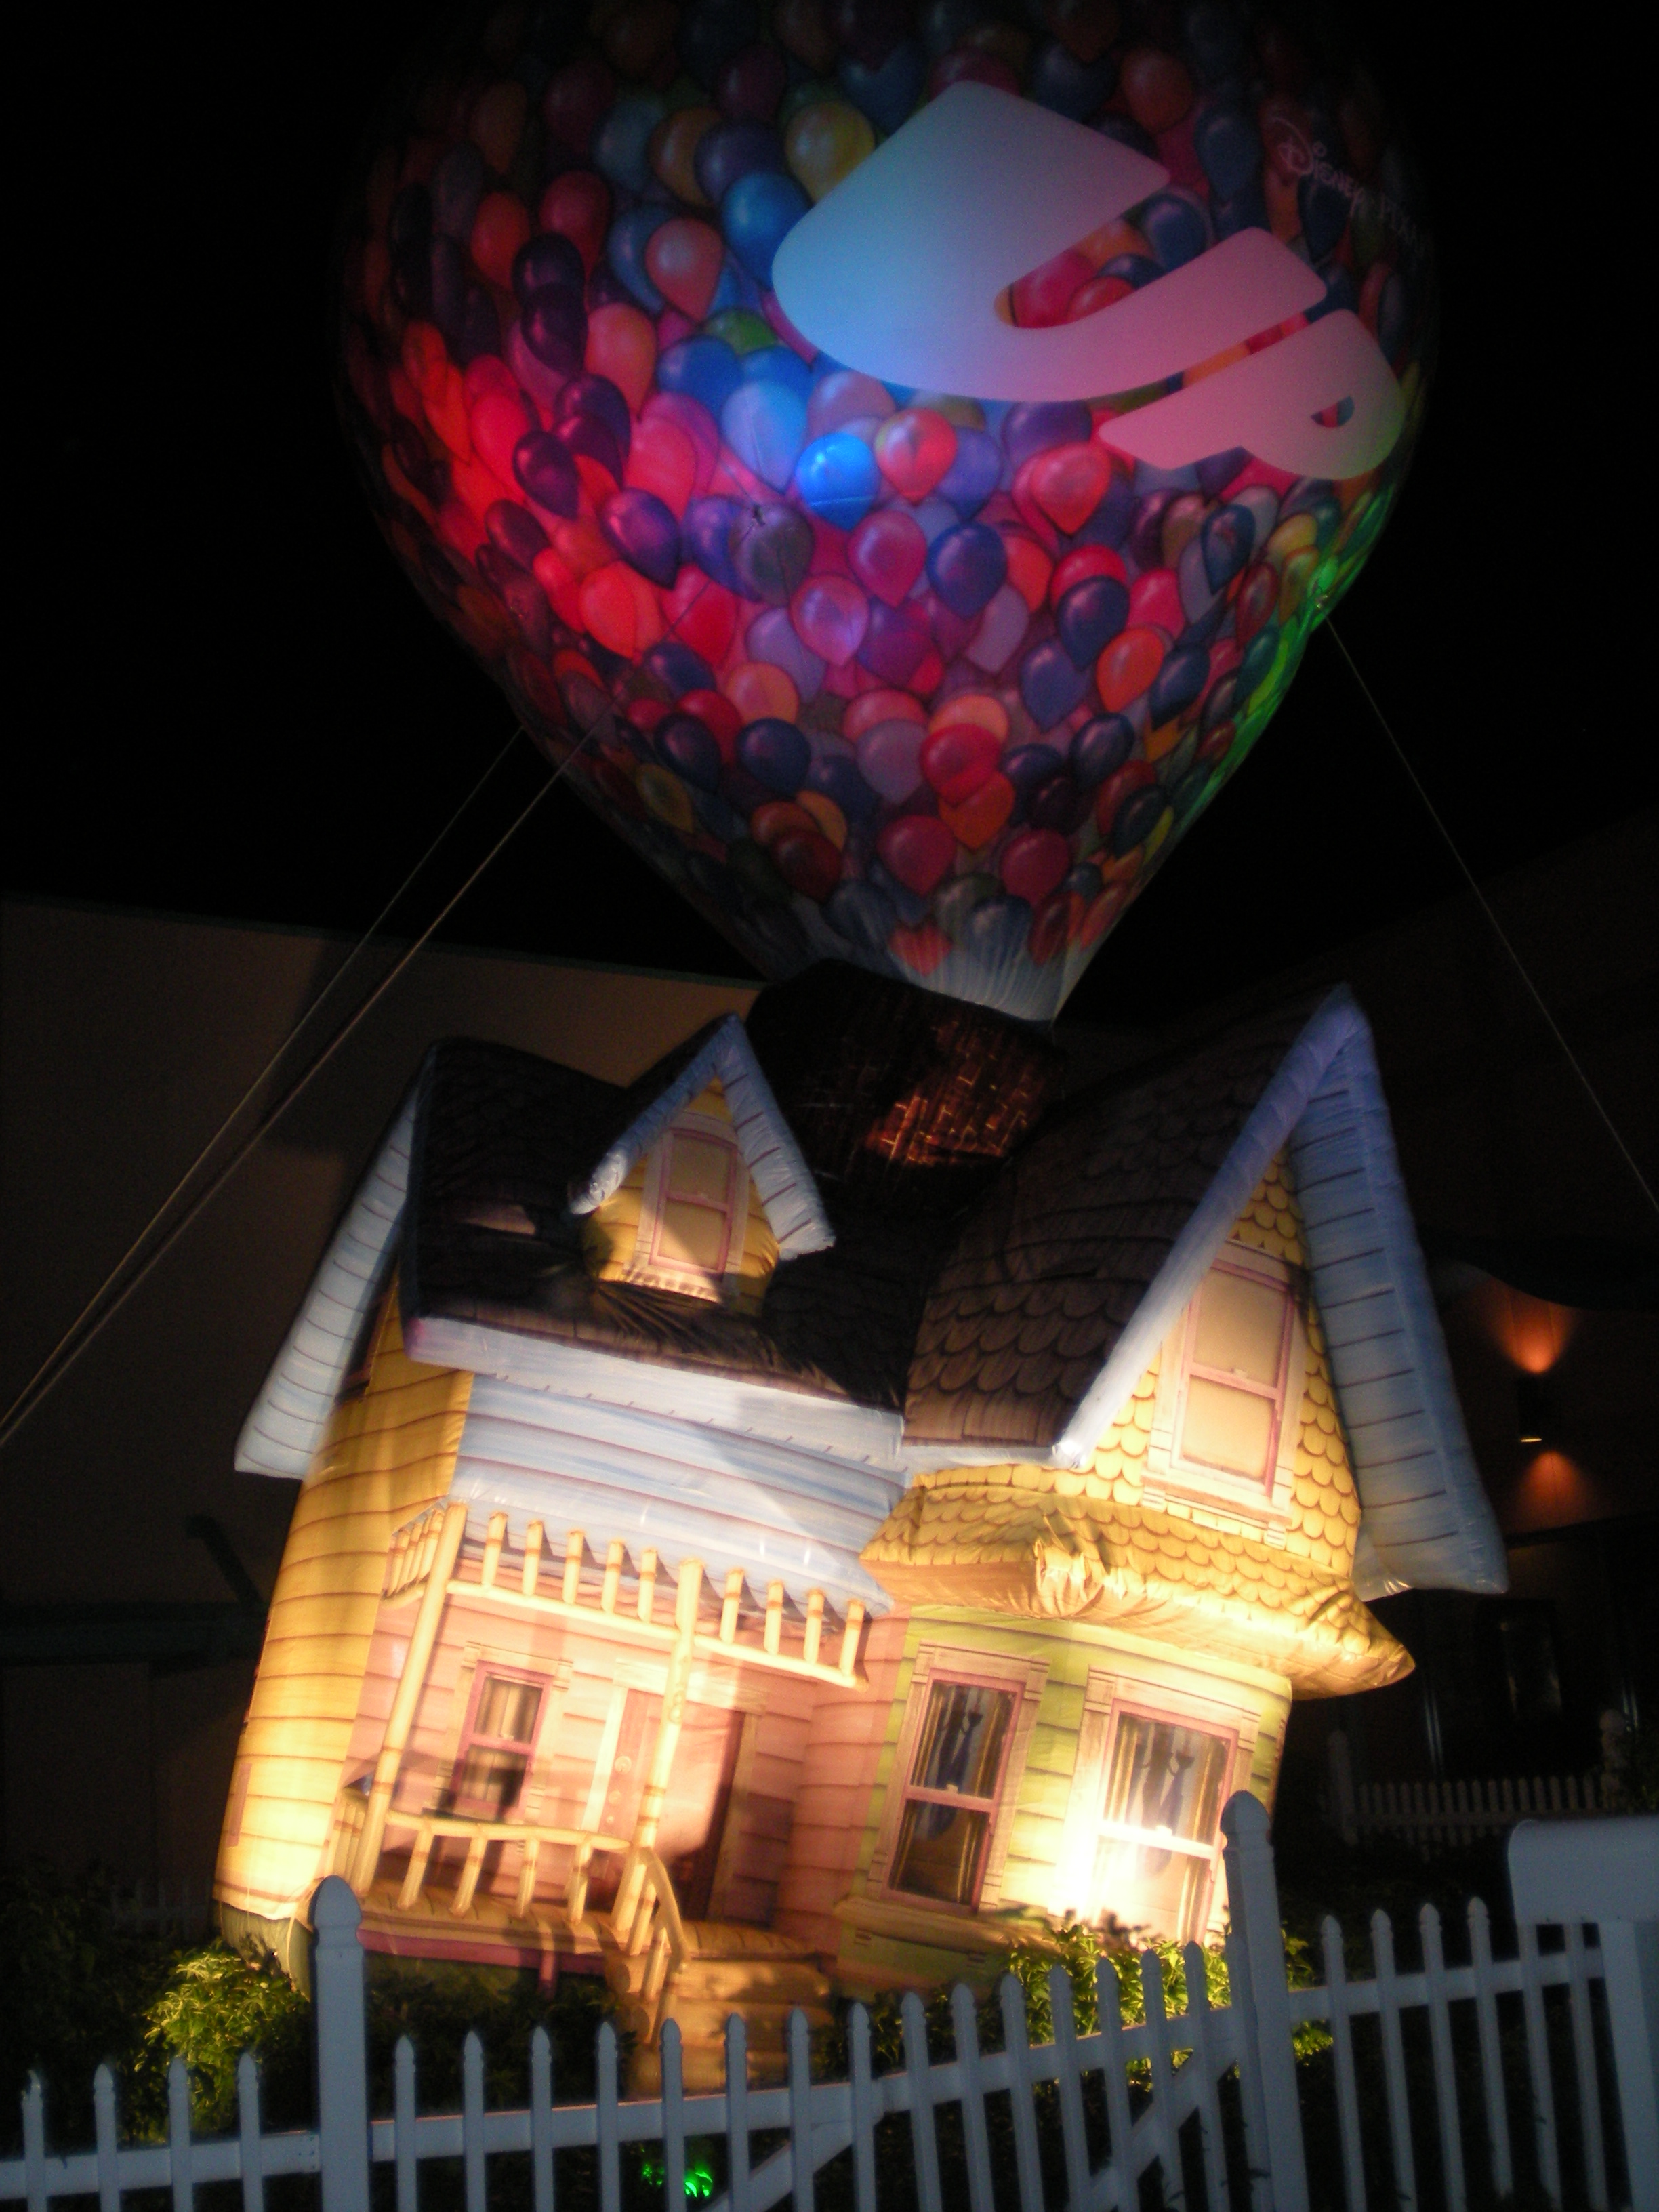 UP! Balloon at Downtown Disney, Florida -from author's collection